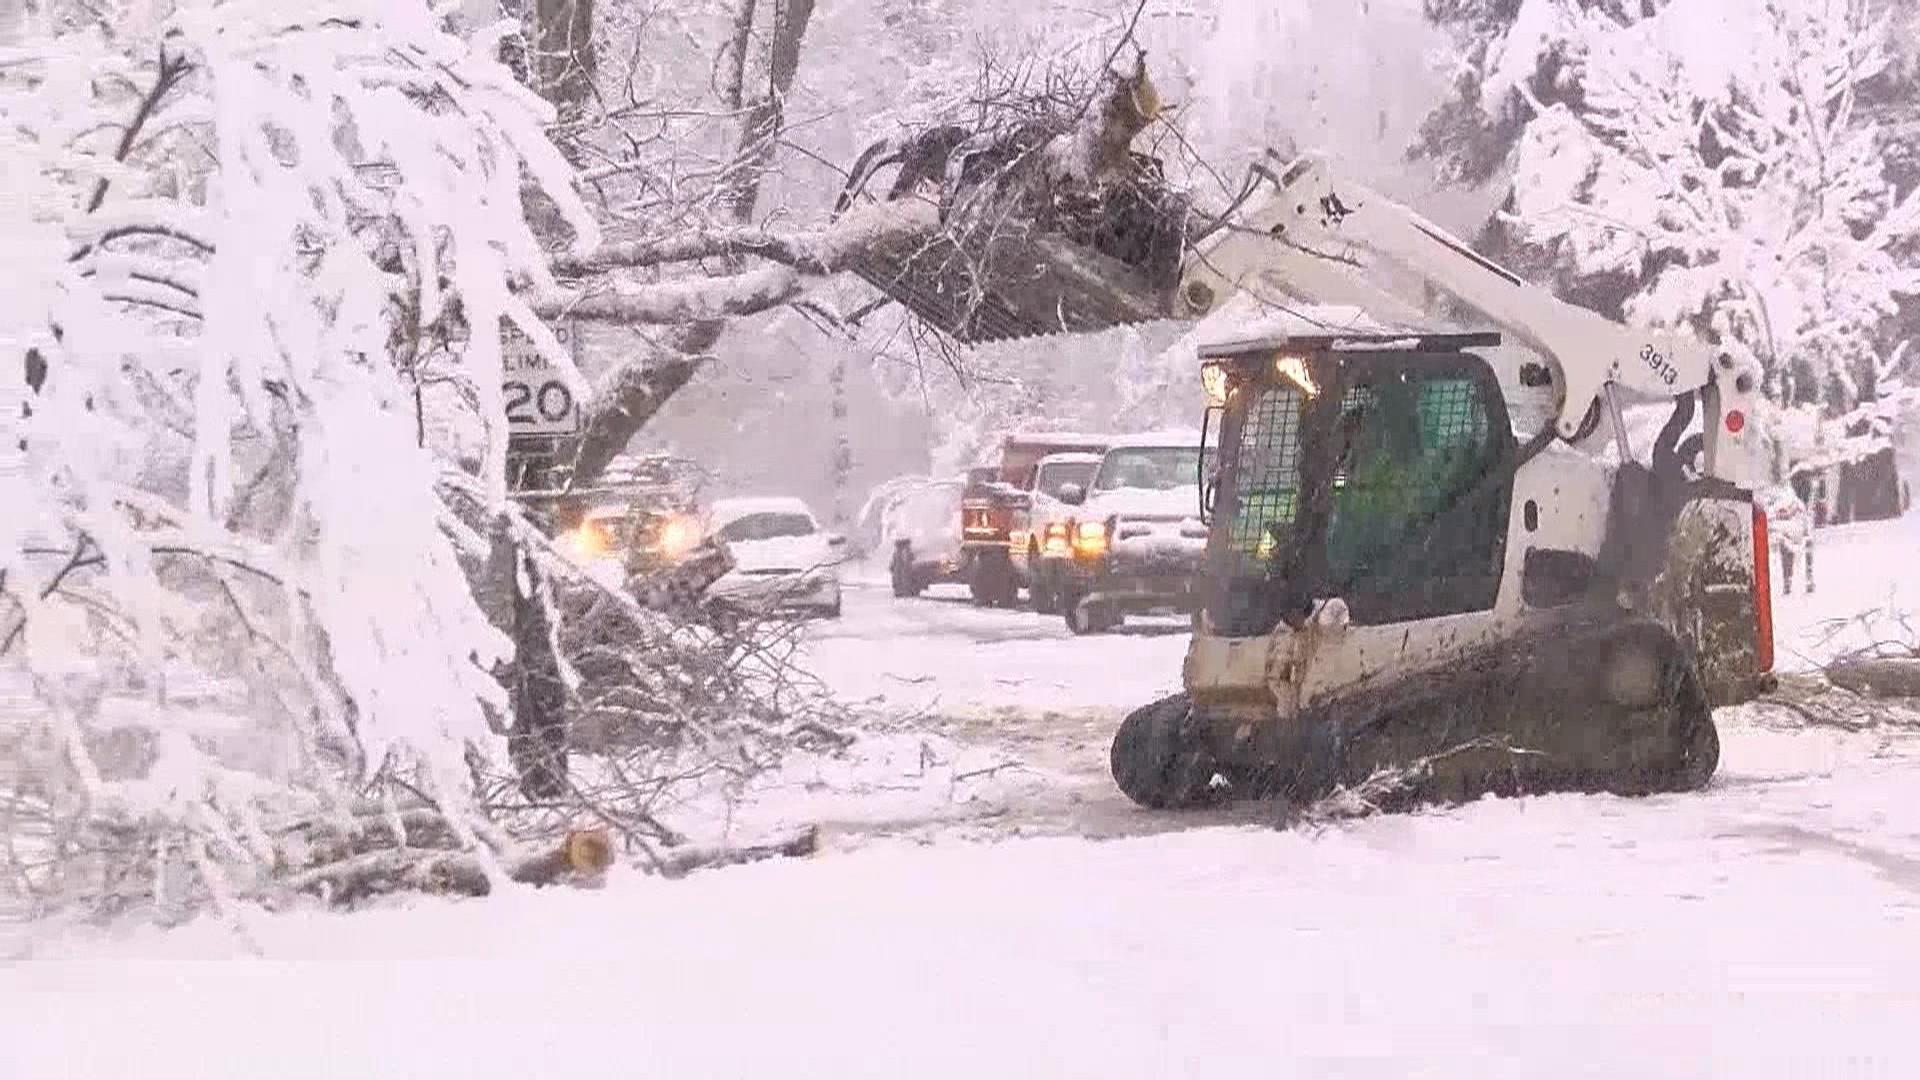 Fourth nor'easter in three weeks leaves 90,000 without power after